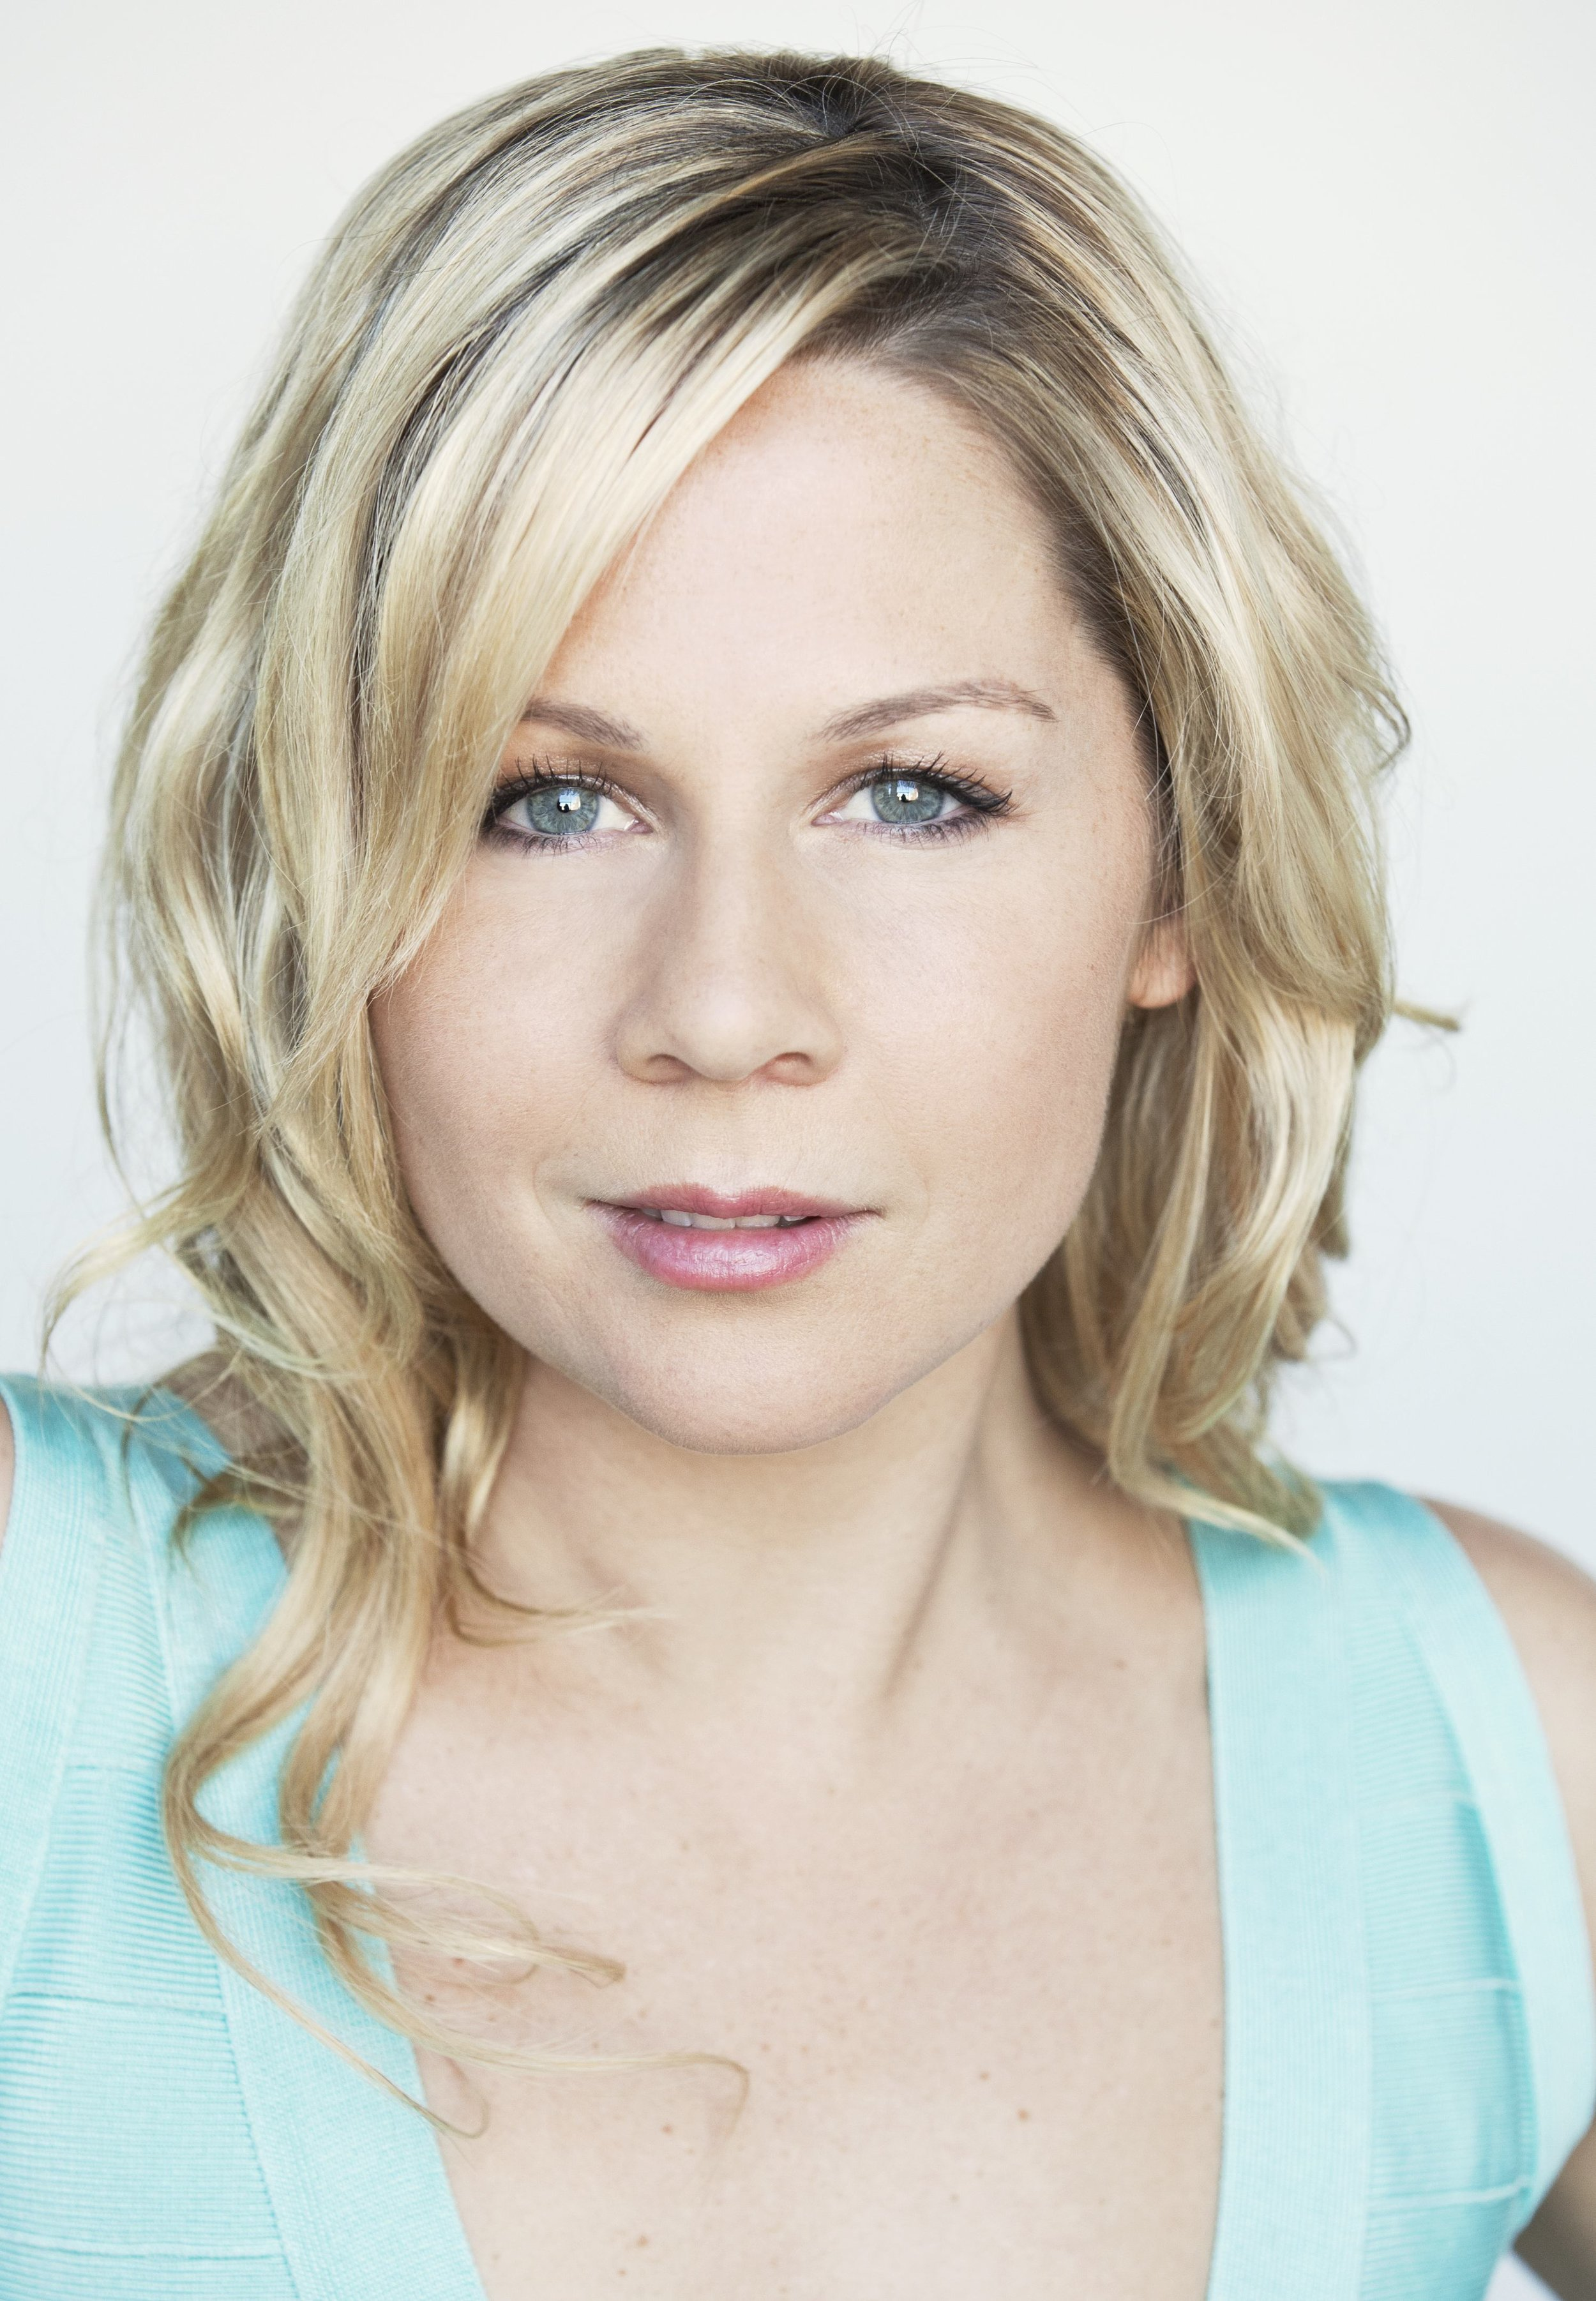 DAVIDGigi Edgley Headshot 2012 Best quality copy copy 2.jpg